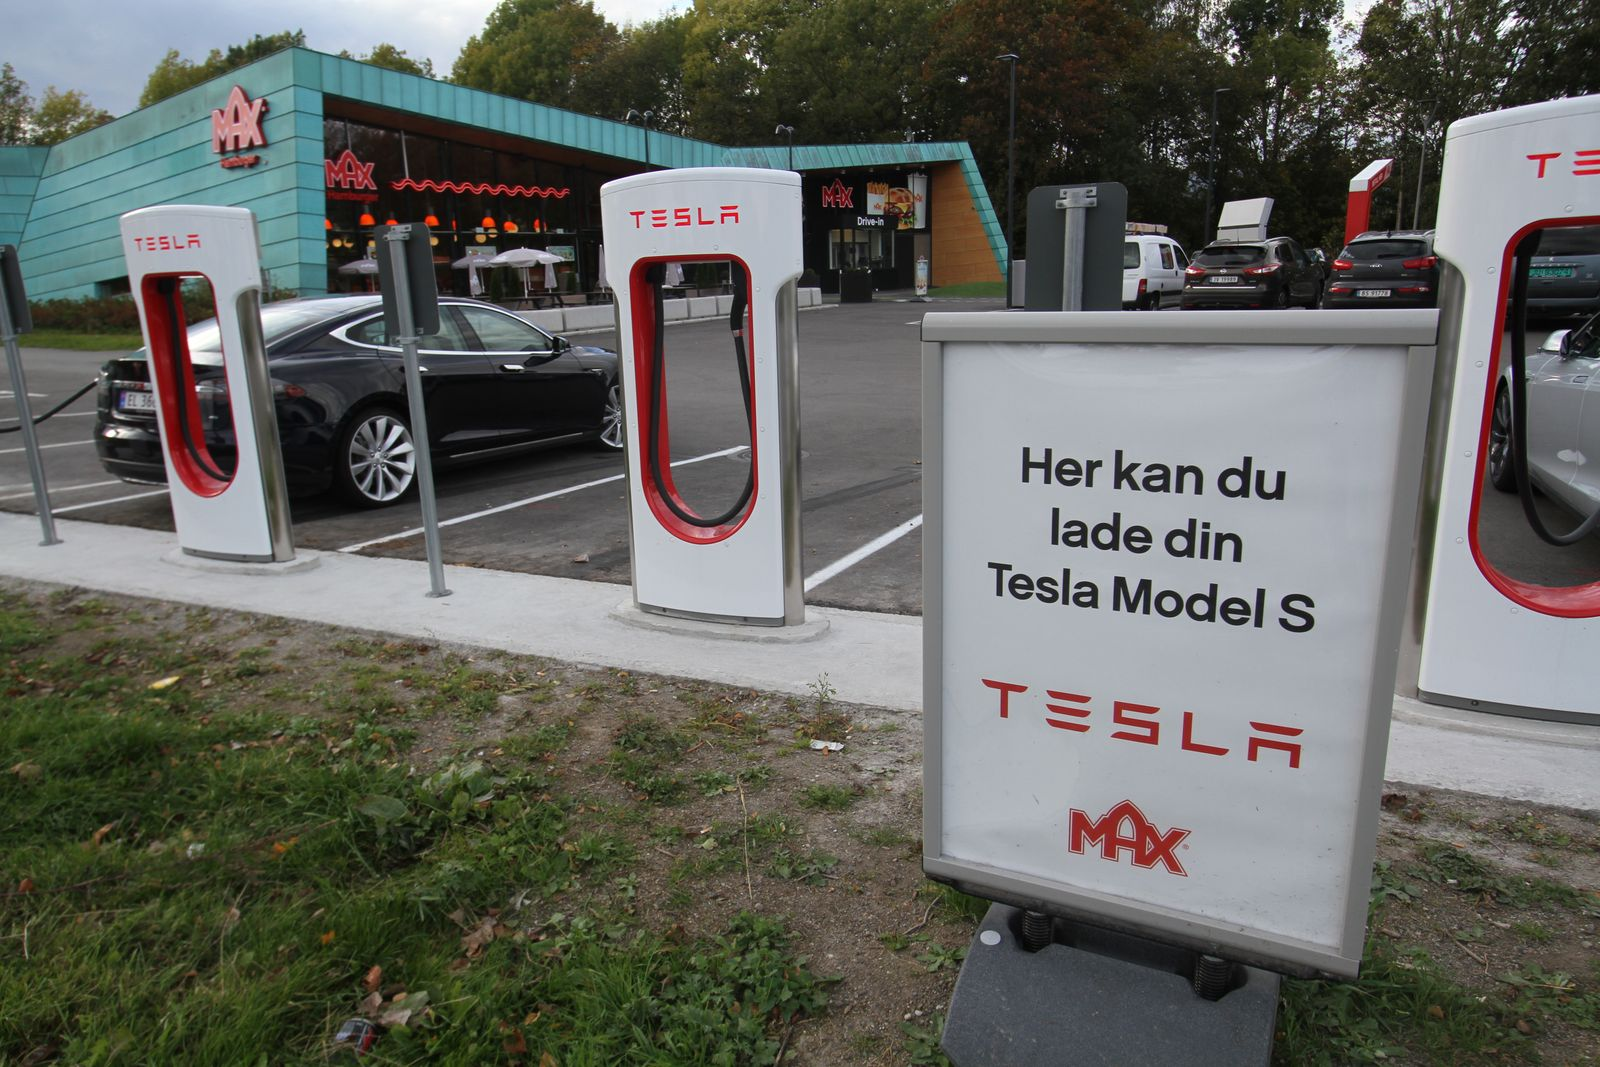 Tesla Superchargers in Norway